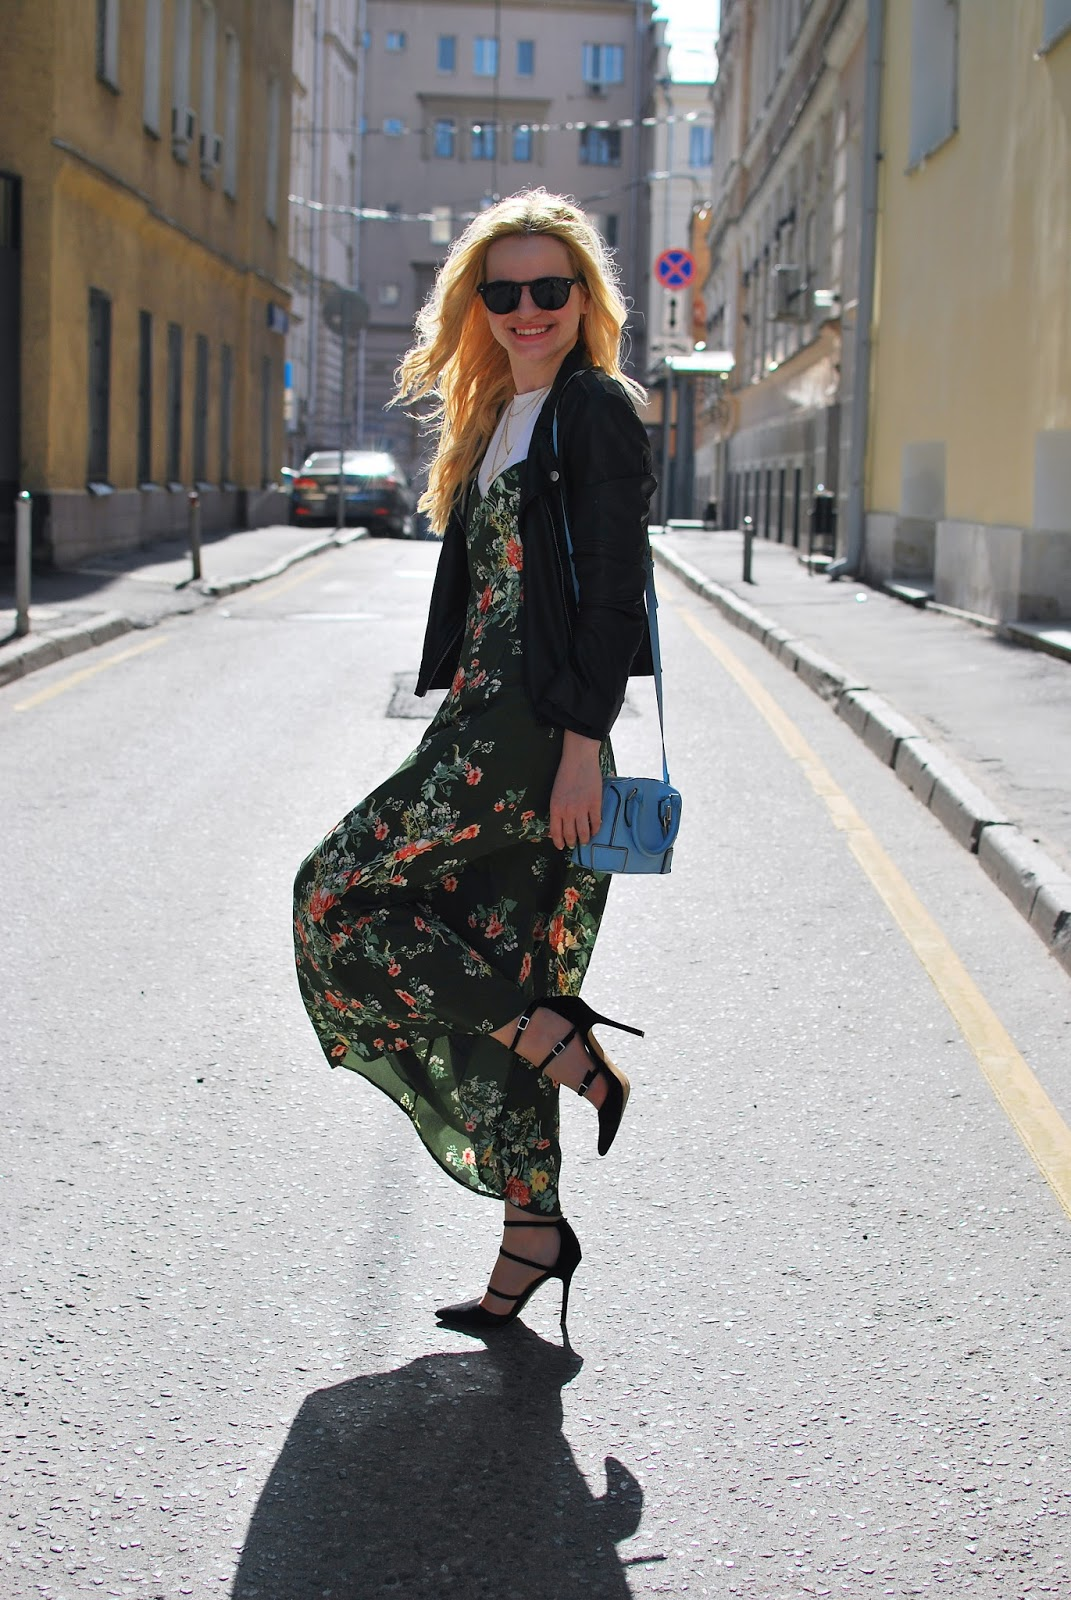 spring photo inspiration, fashion blog, micro bag outfit, stradvarius outfit